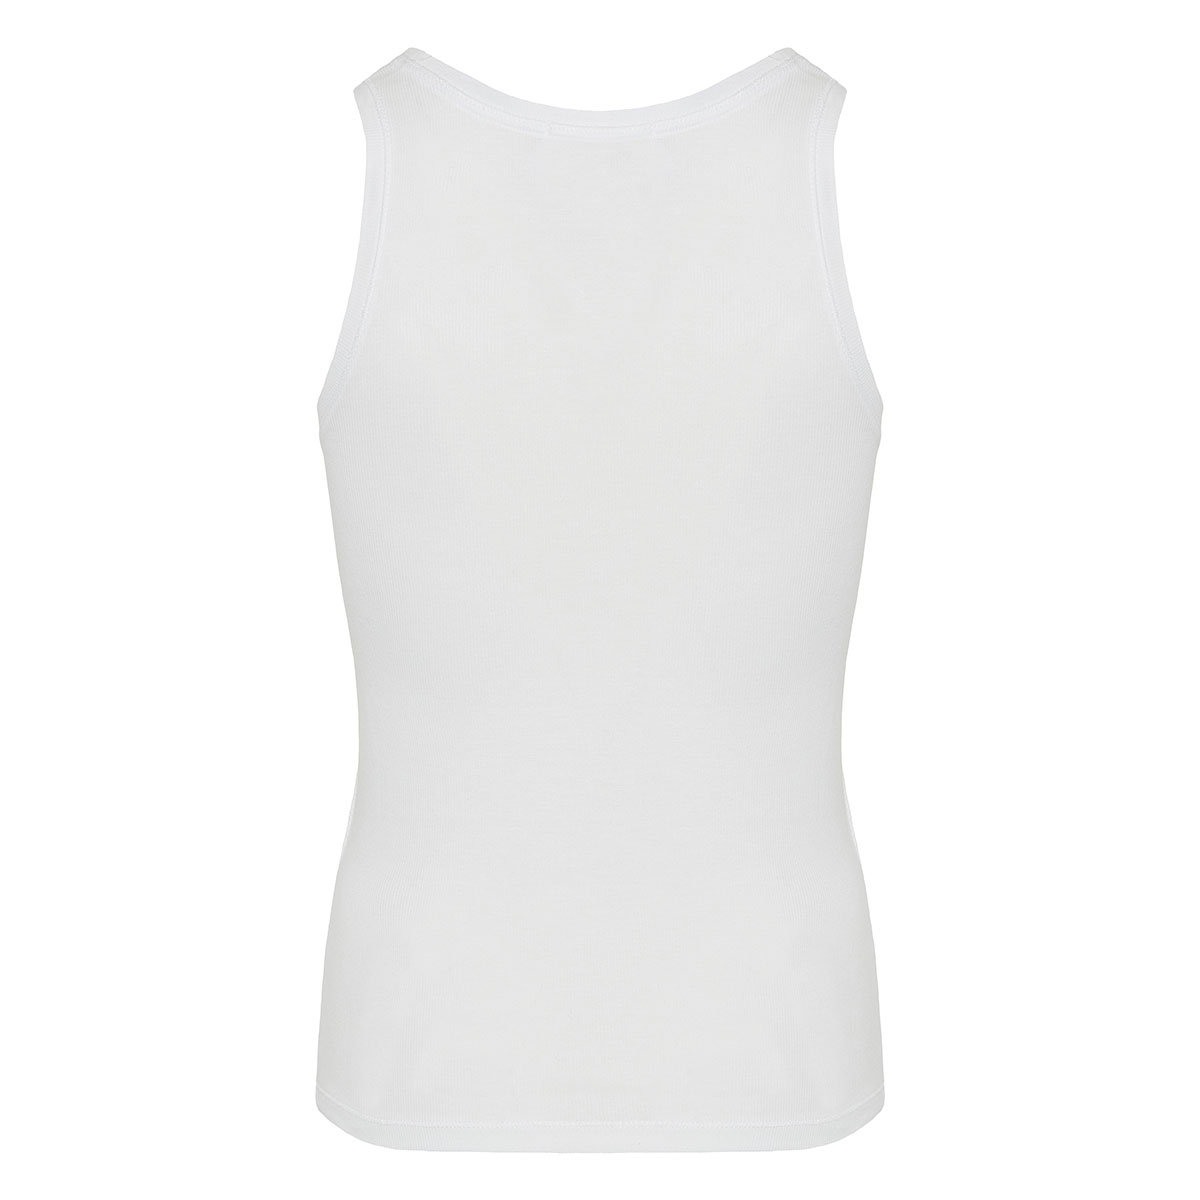 Kari ribbed tank top